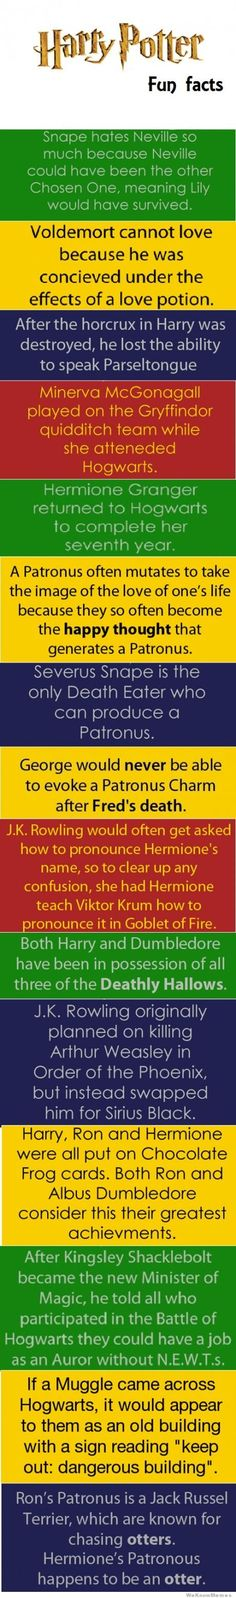 """This just created a wave of emotion... Are these really true?  Did all of these """"facts"""" come from J.K. Rowling? I need to know!  The one about Sirius makes me really sad although I would miss Arthur too..."""